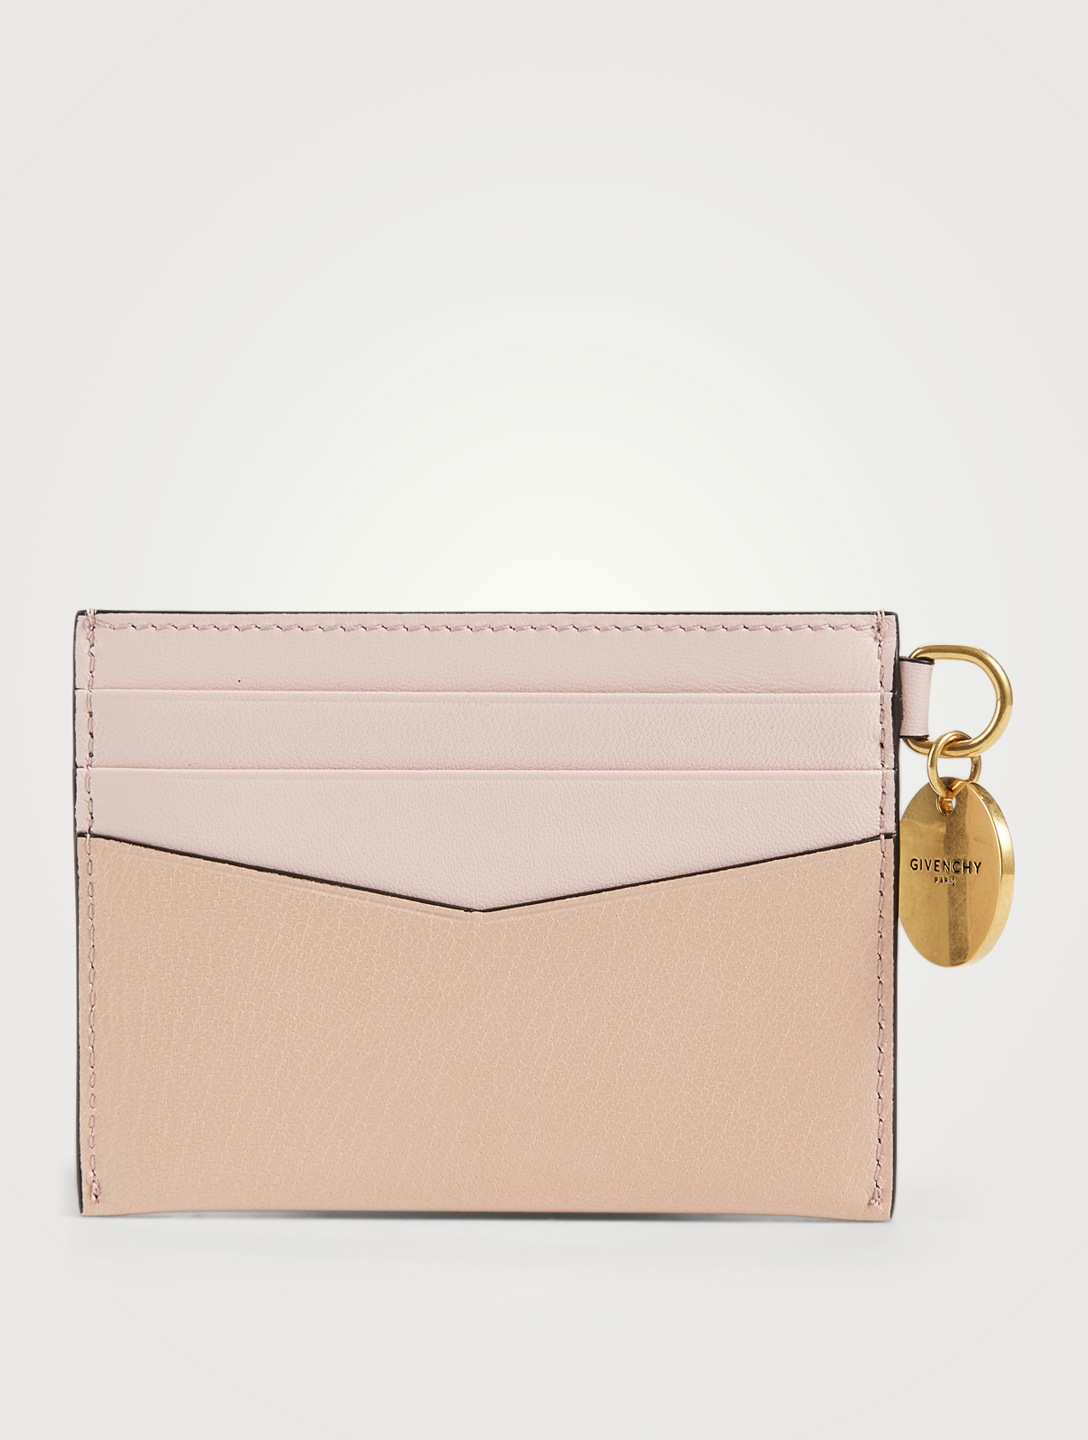 GIVENCHY Edge Leather Card Holder Women's Pink